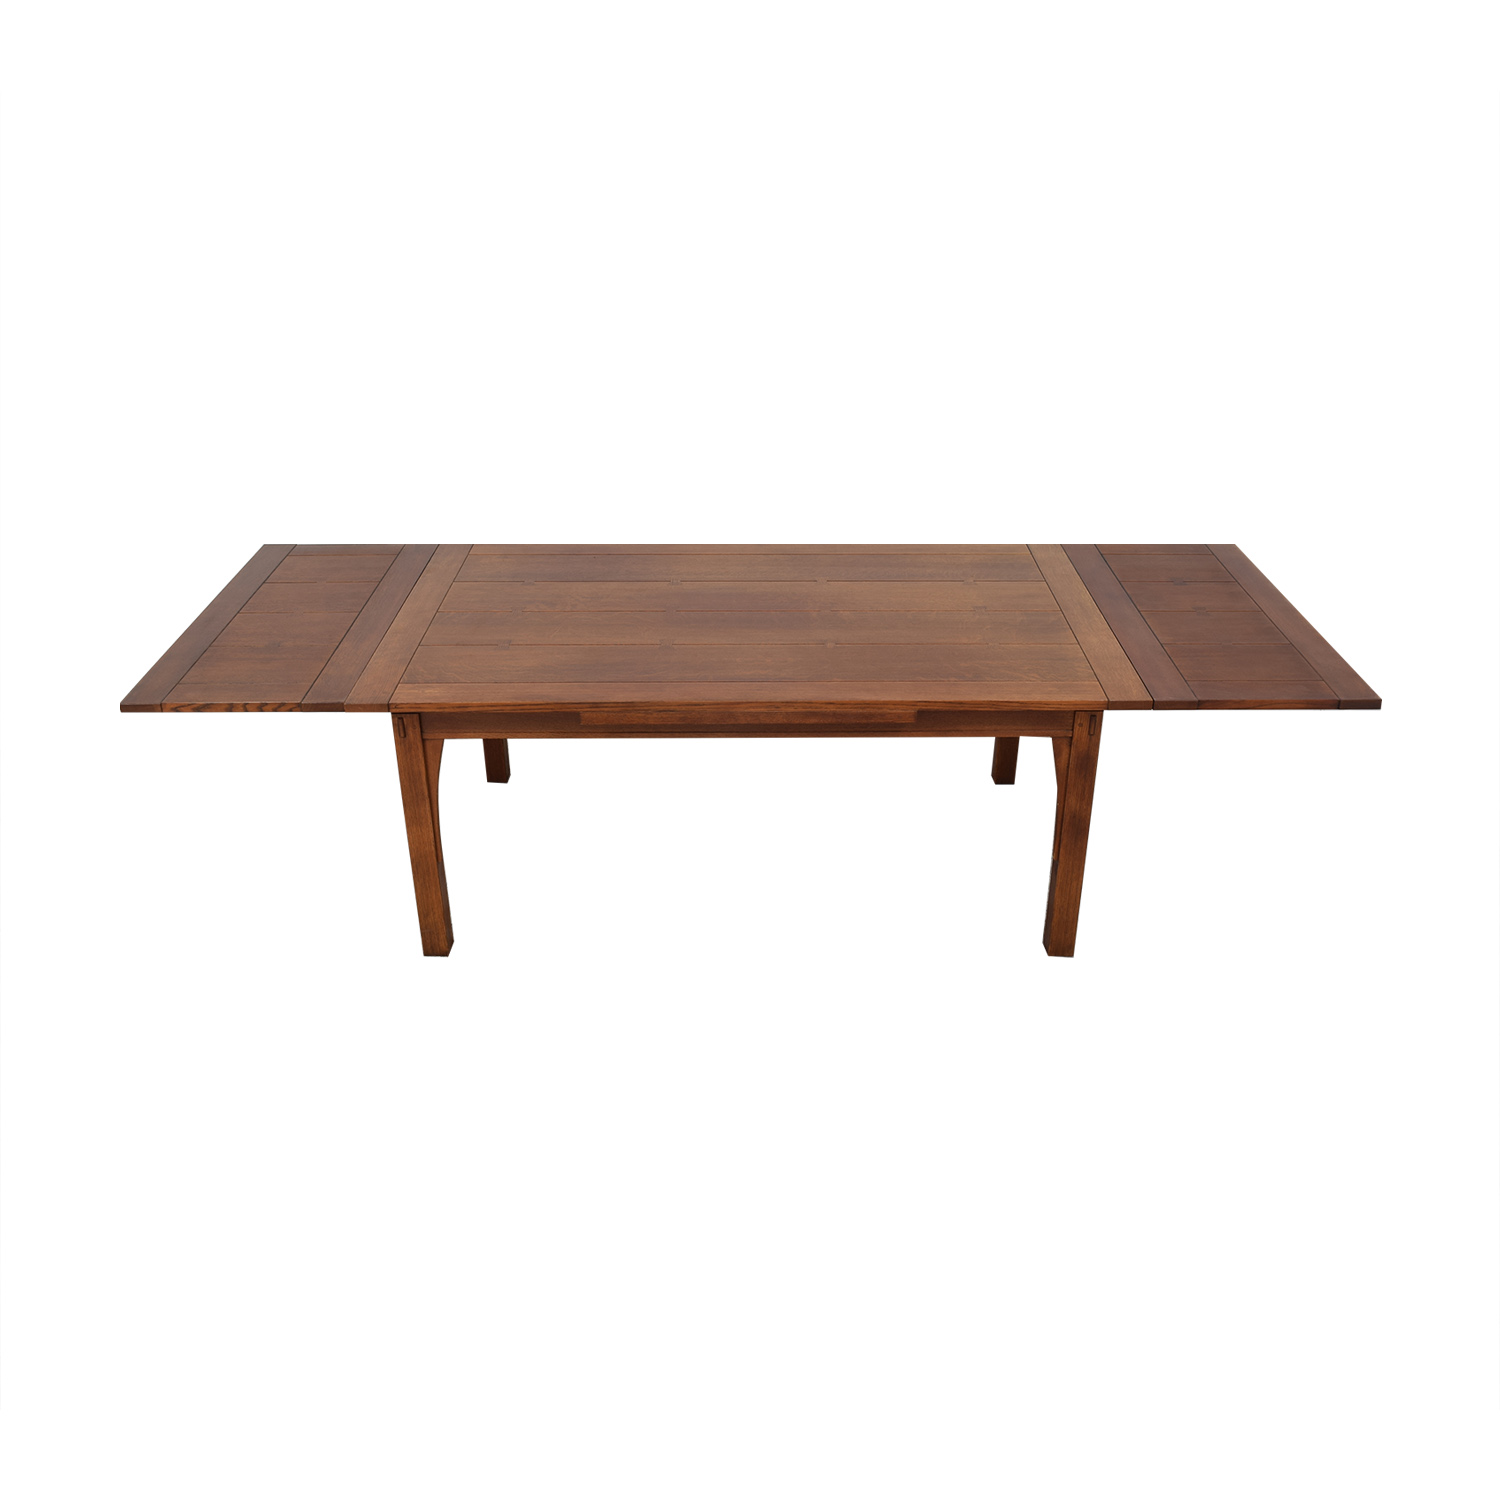 Stickley Furniture Stickley Mission Dining Table dimensions